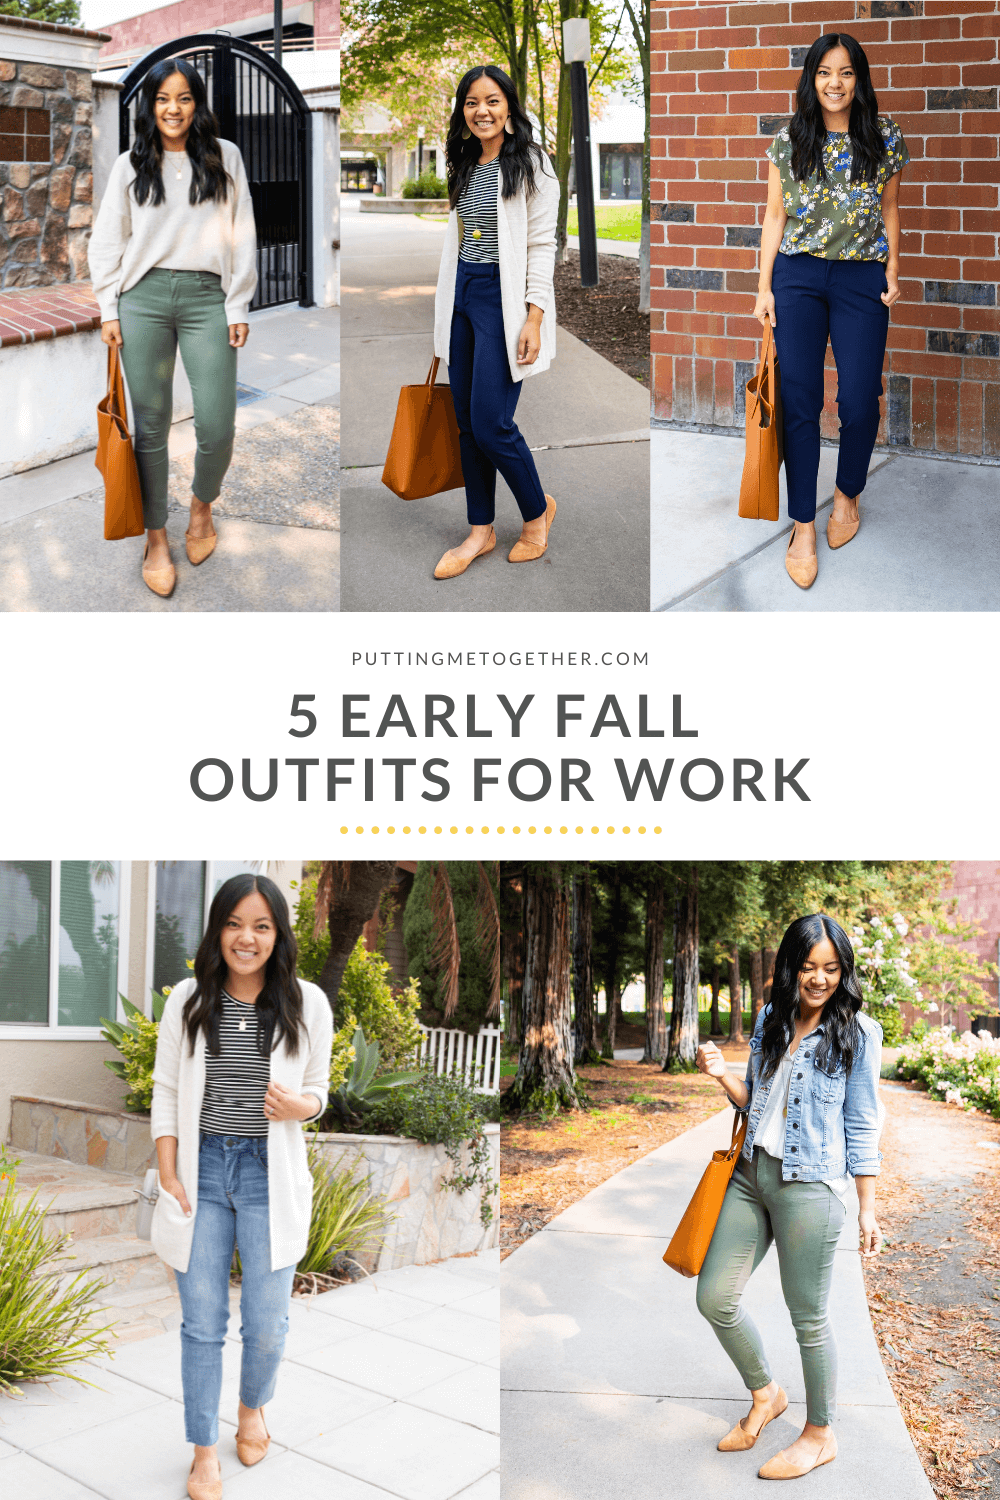 5 Early Fall Outfits for Work